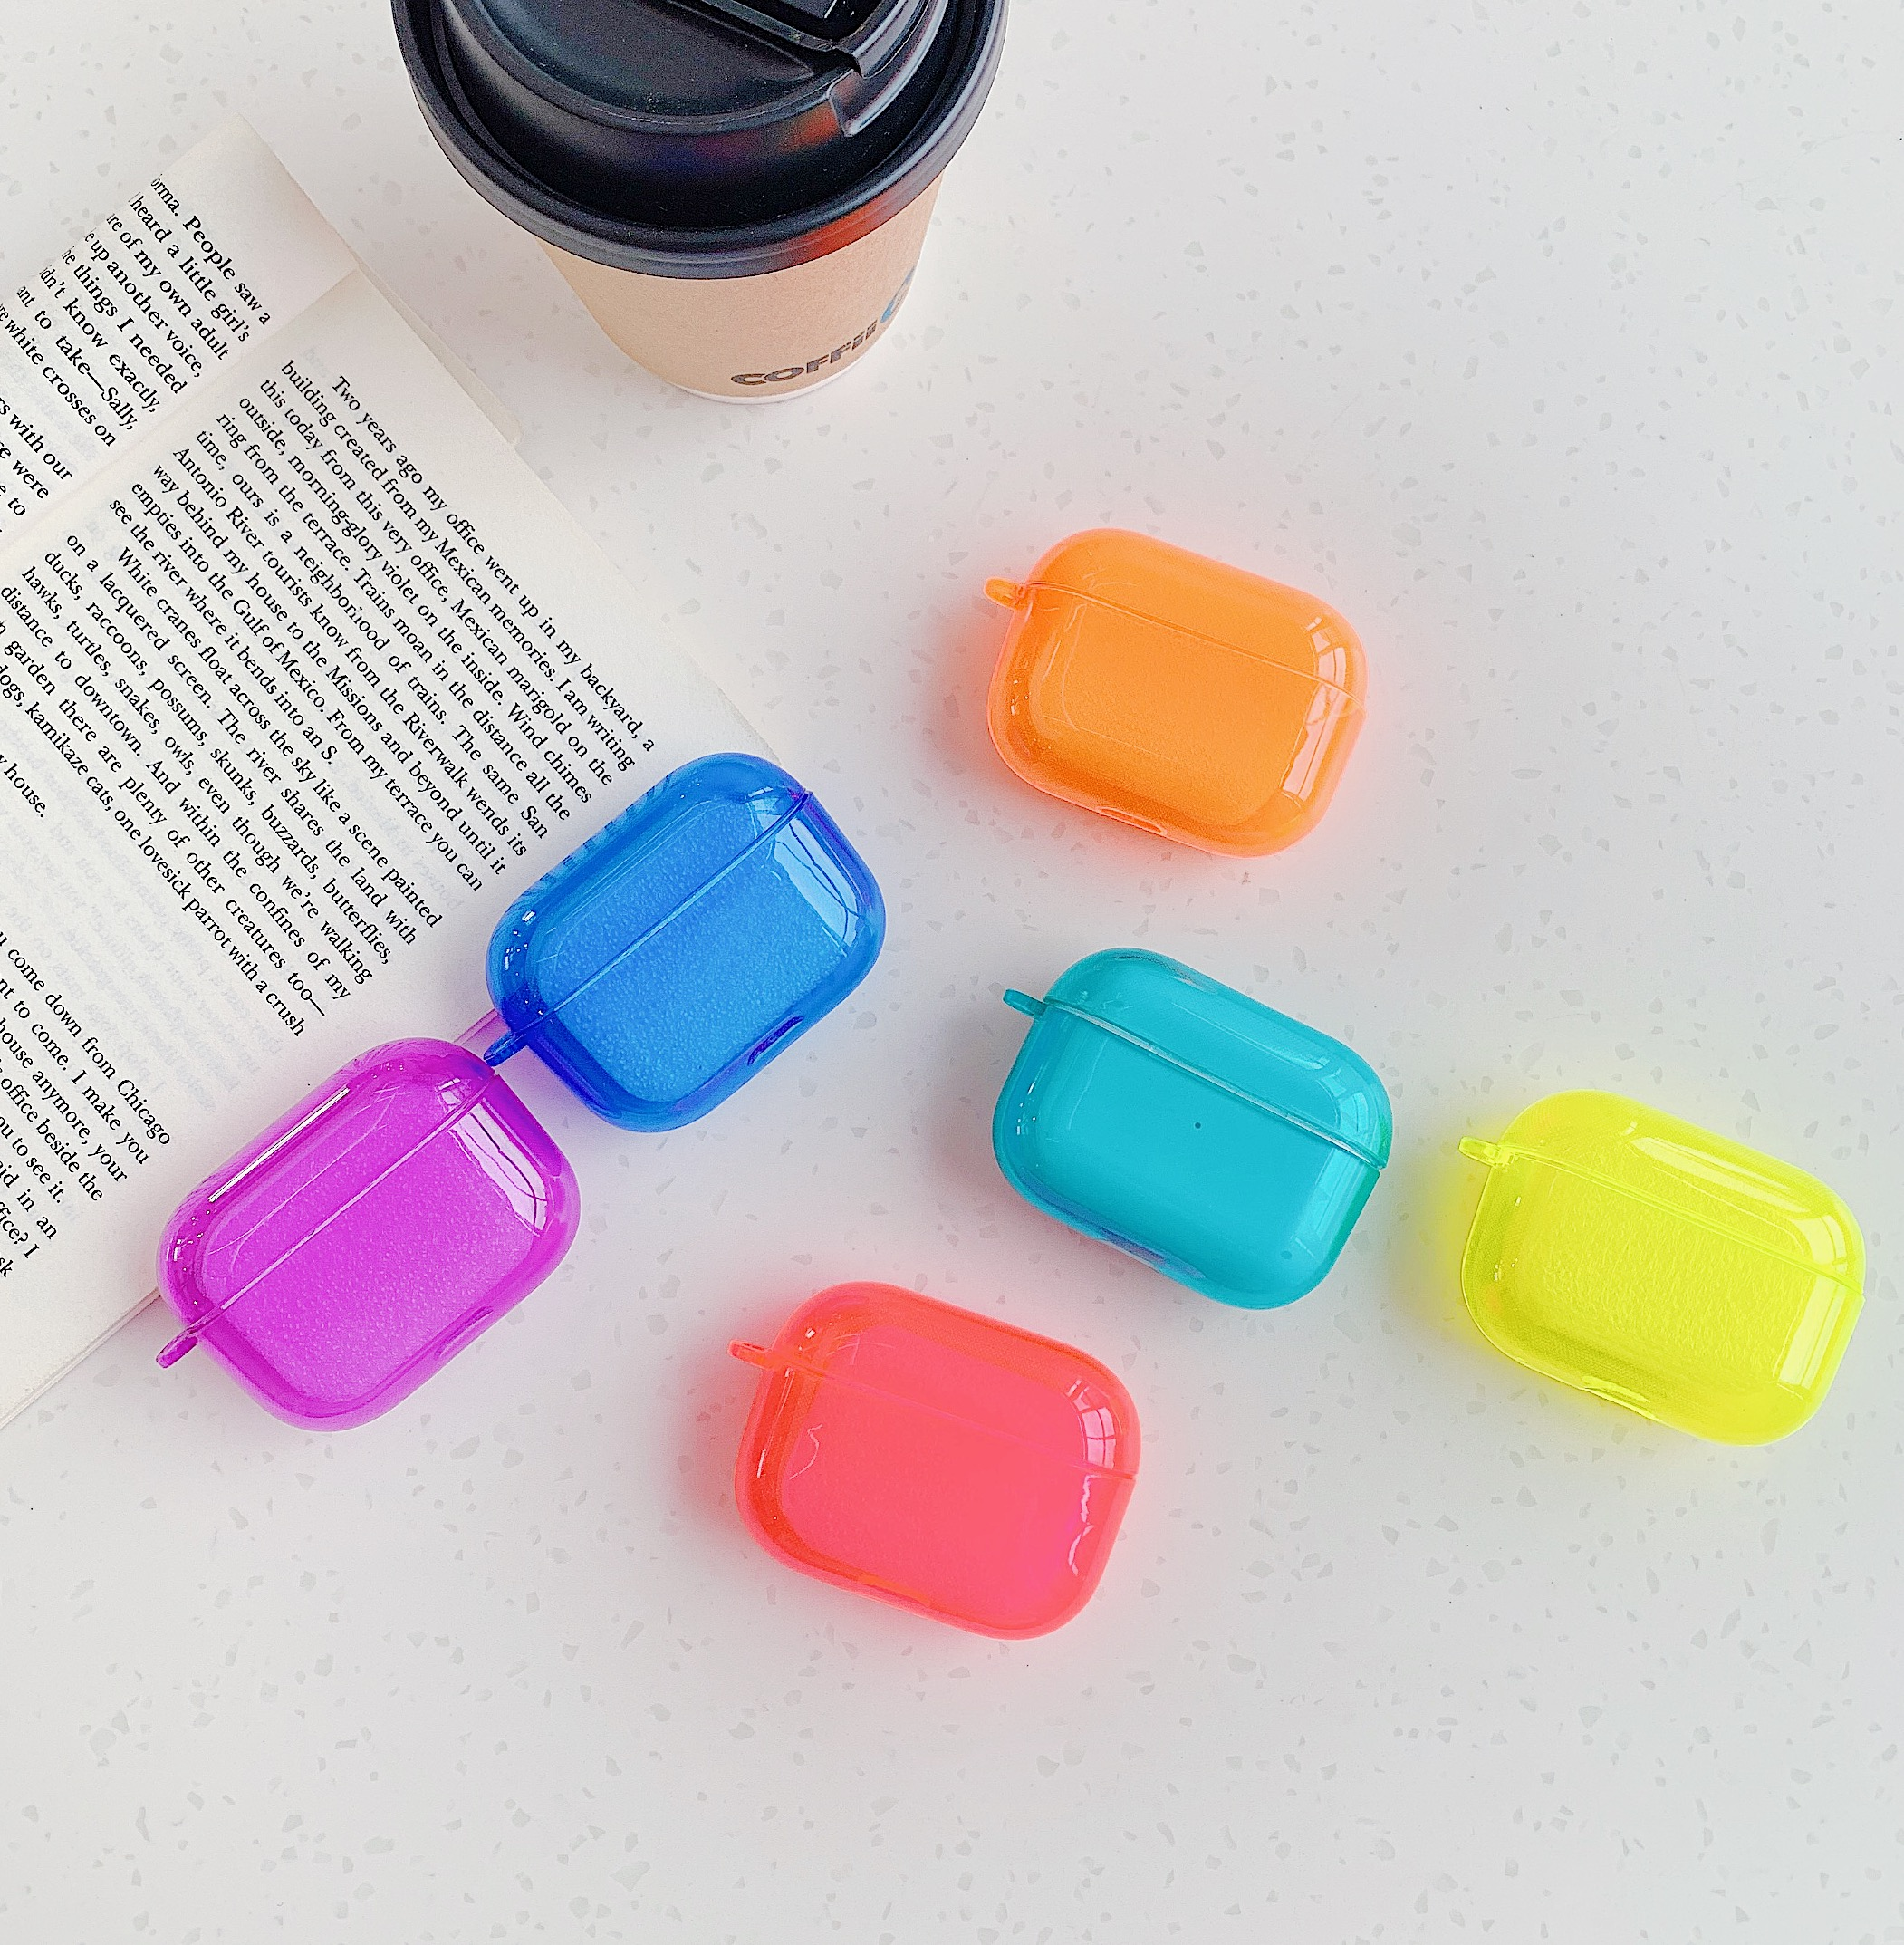 For Airpods Pro Case Neon Candy Fluorescence Soft TPU Clear Cute Cover For Airpods Pro Air Pods 2 Transparent Silicone Cases